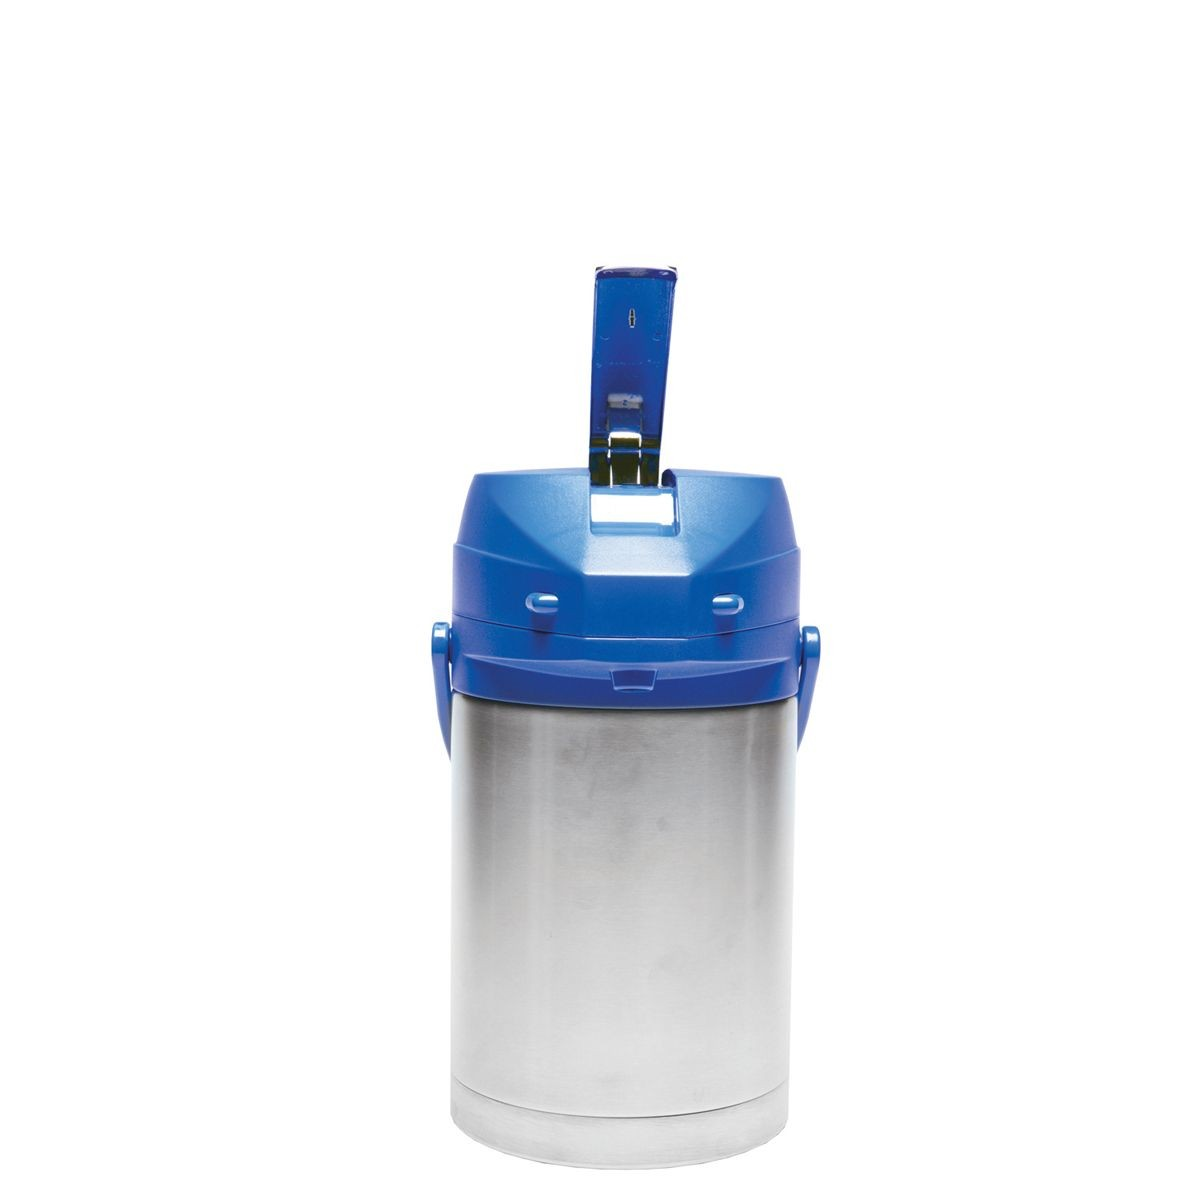 Service Ideas CTAL22BLU Blue Top Stainless Steel Lined Color Me SVAC Airpot, 2.2 Liter